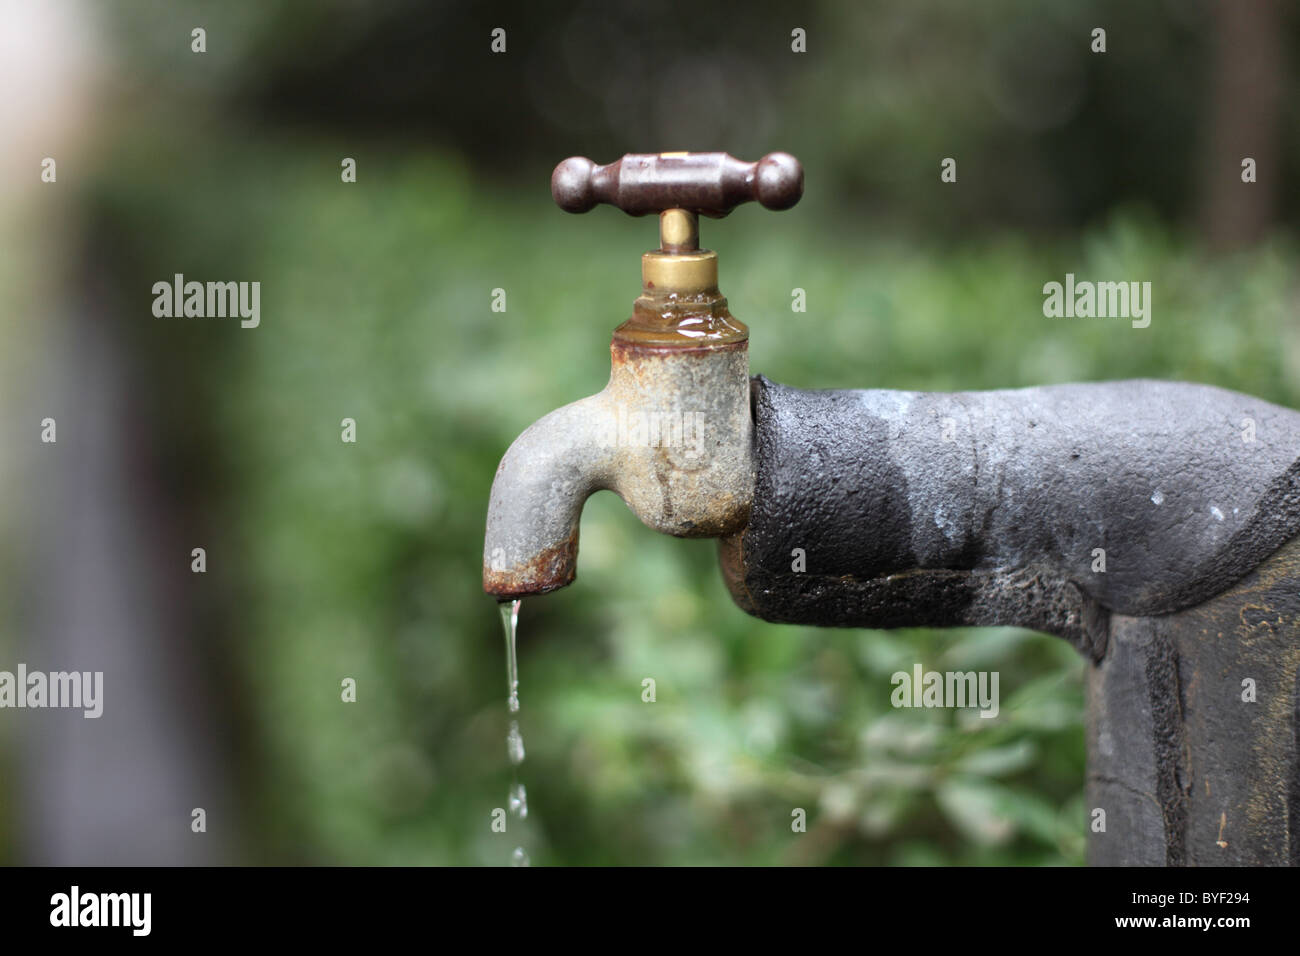 Old water tap in the garden - Stock Image